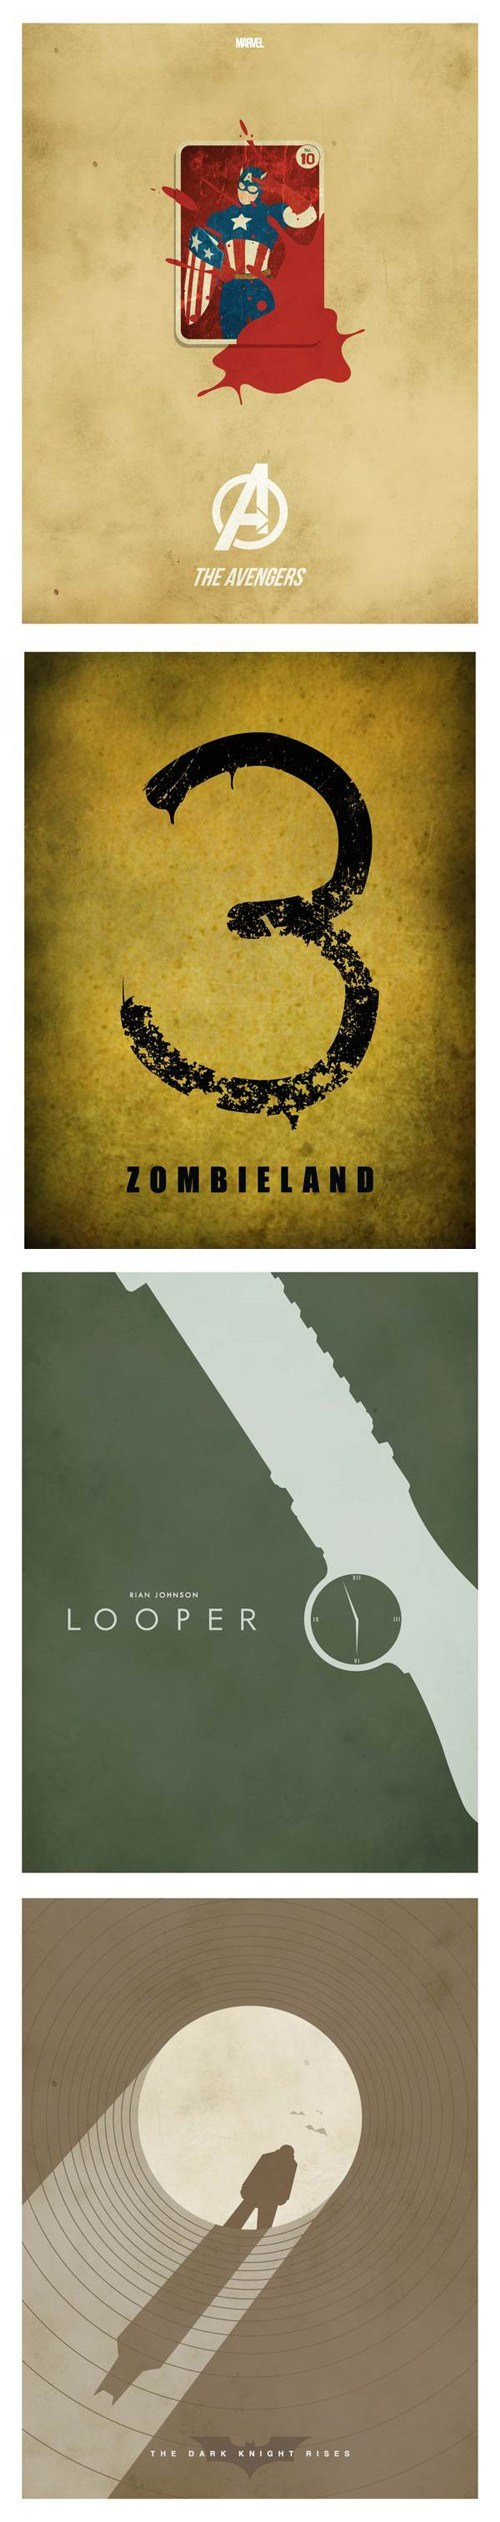 minimalist,Fan Art,The Avengers,movie posters,batman,Zombieland,looper